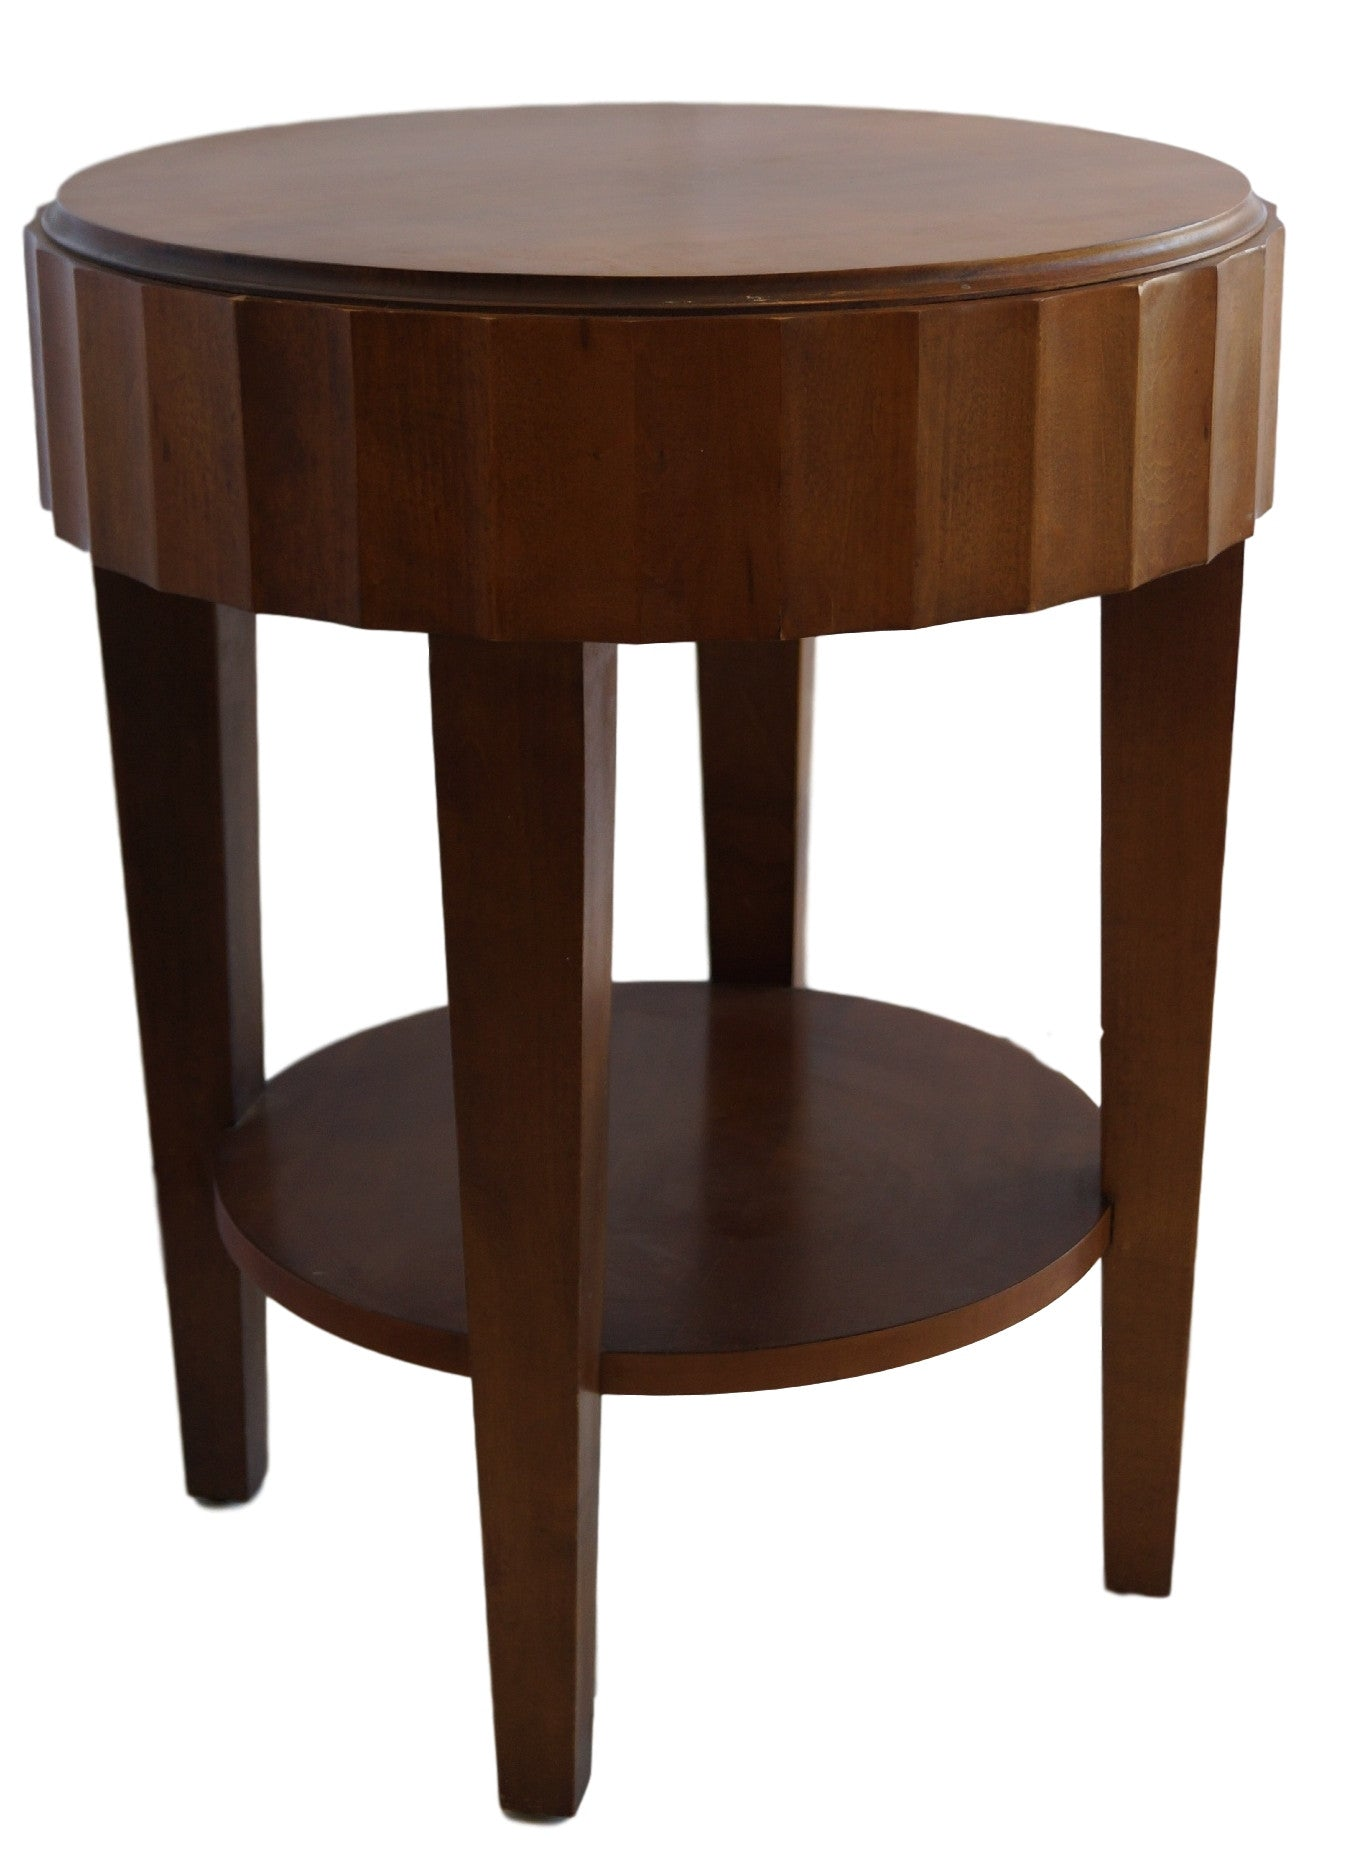 Peterdunham Bma At Home Round Vintage Side Table With Scalloped Edge